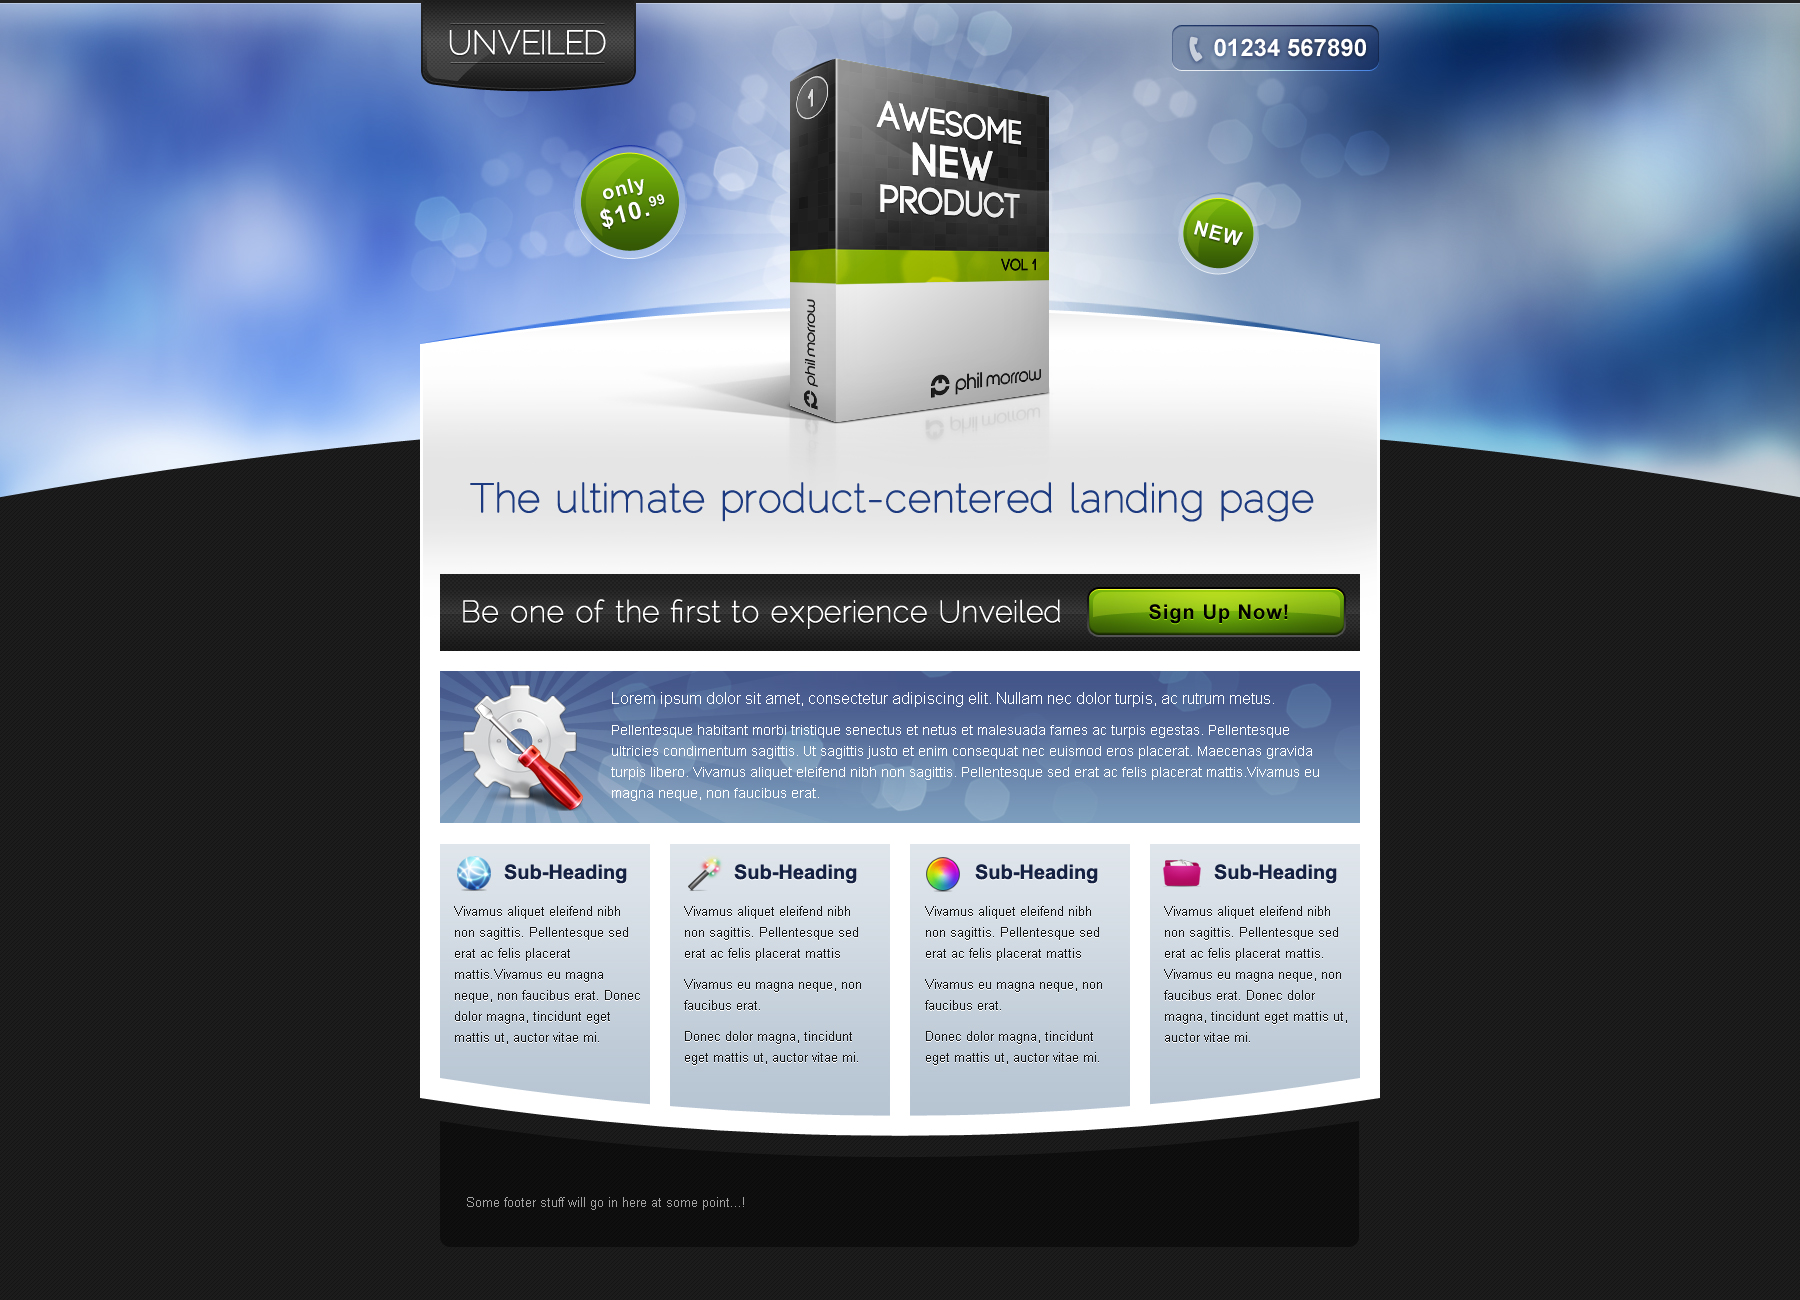 Unveiled - Ultimate Product Focused Landing Page - This is the first of 4 themes, in striking blue and vibrant green.